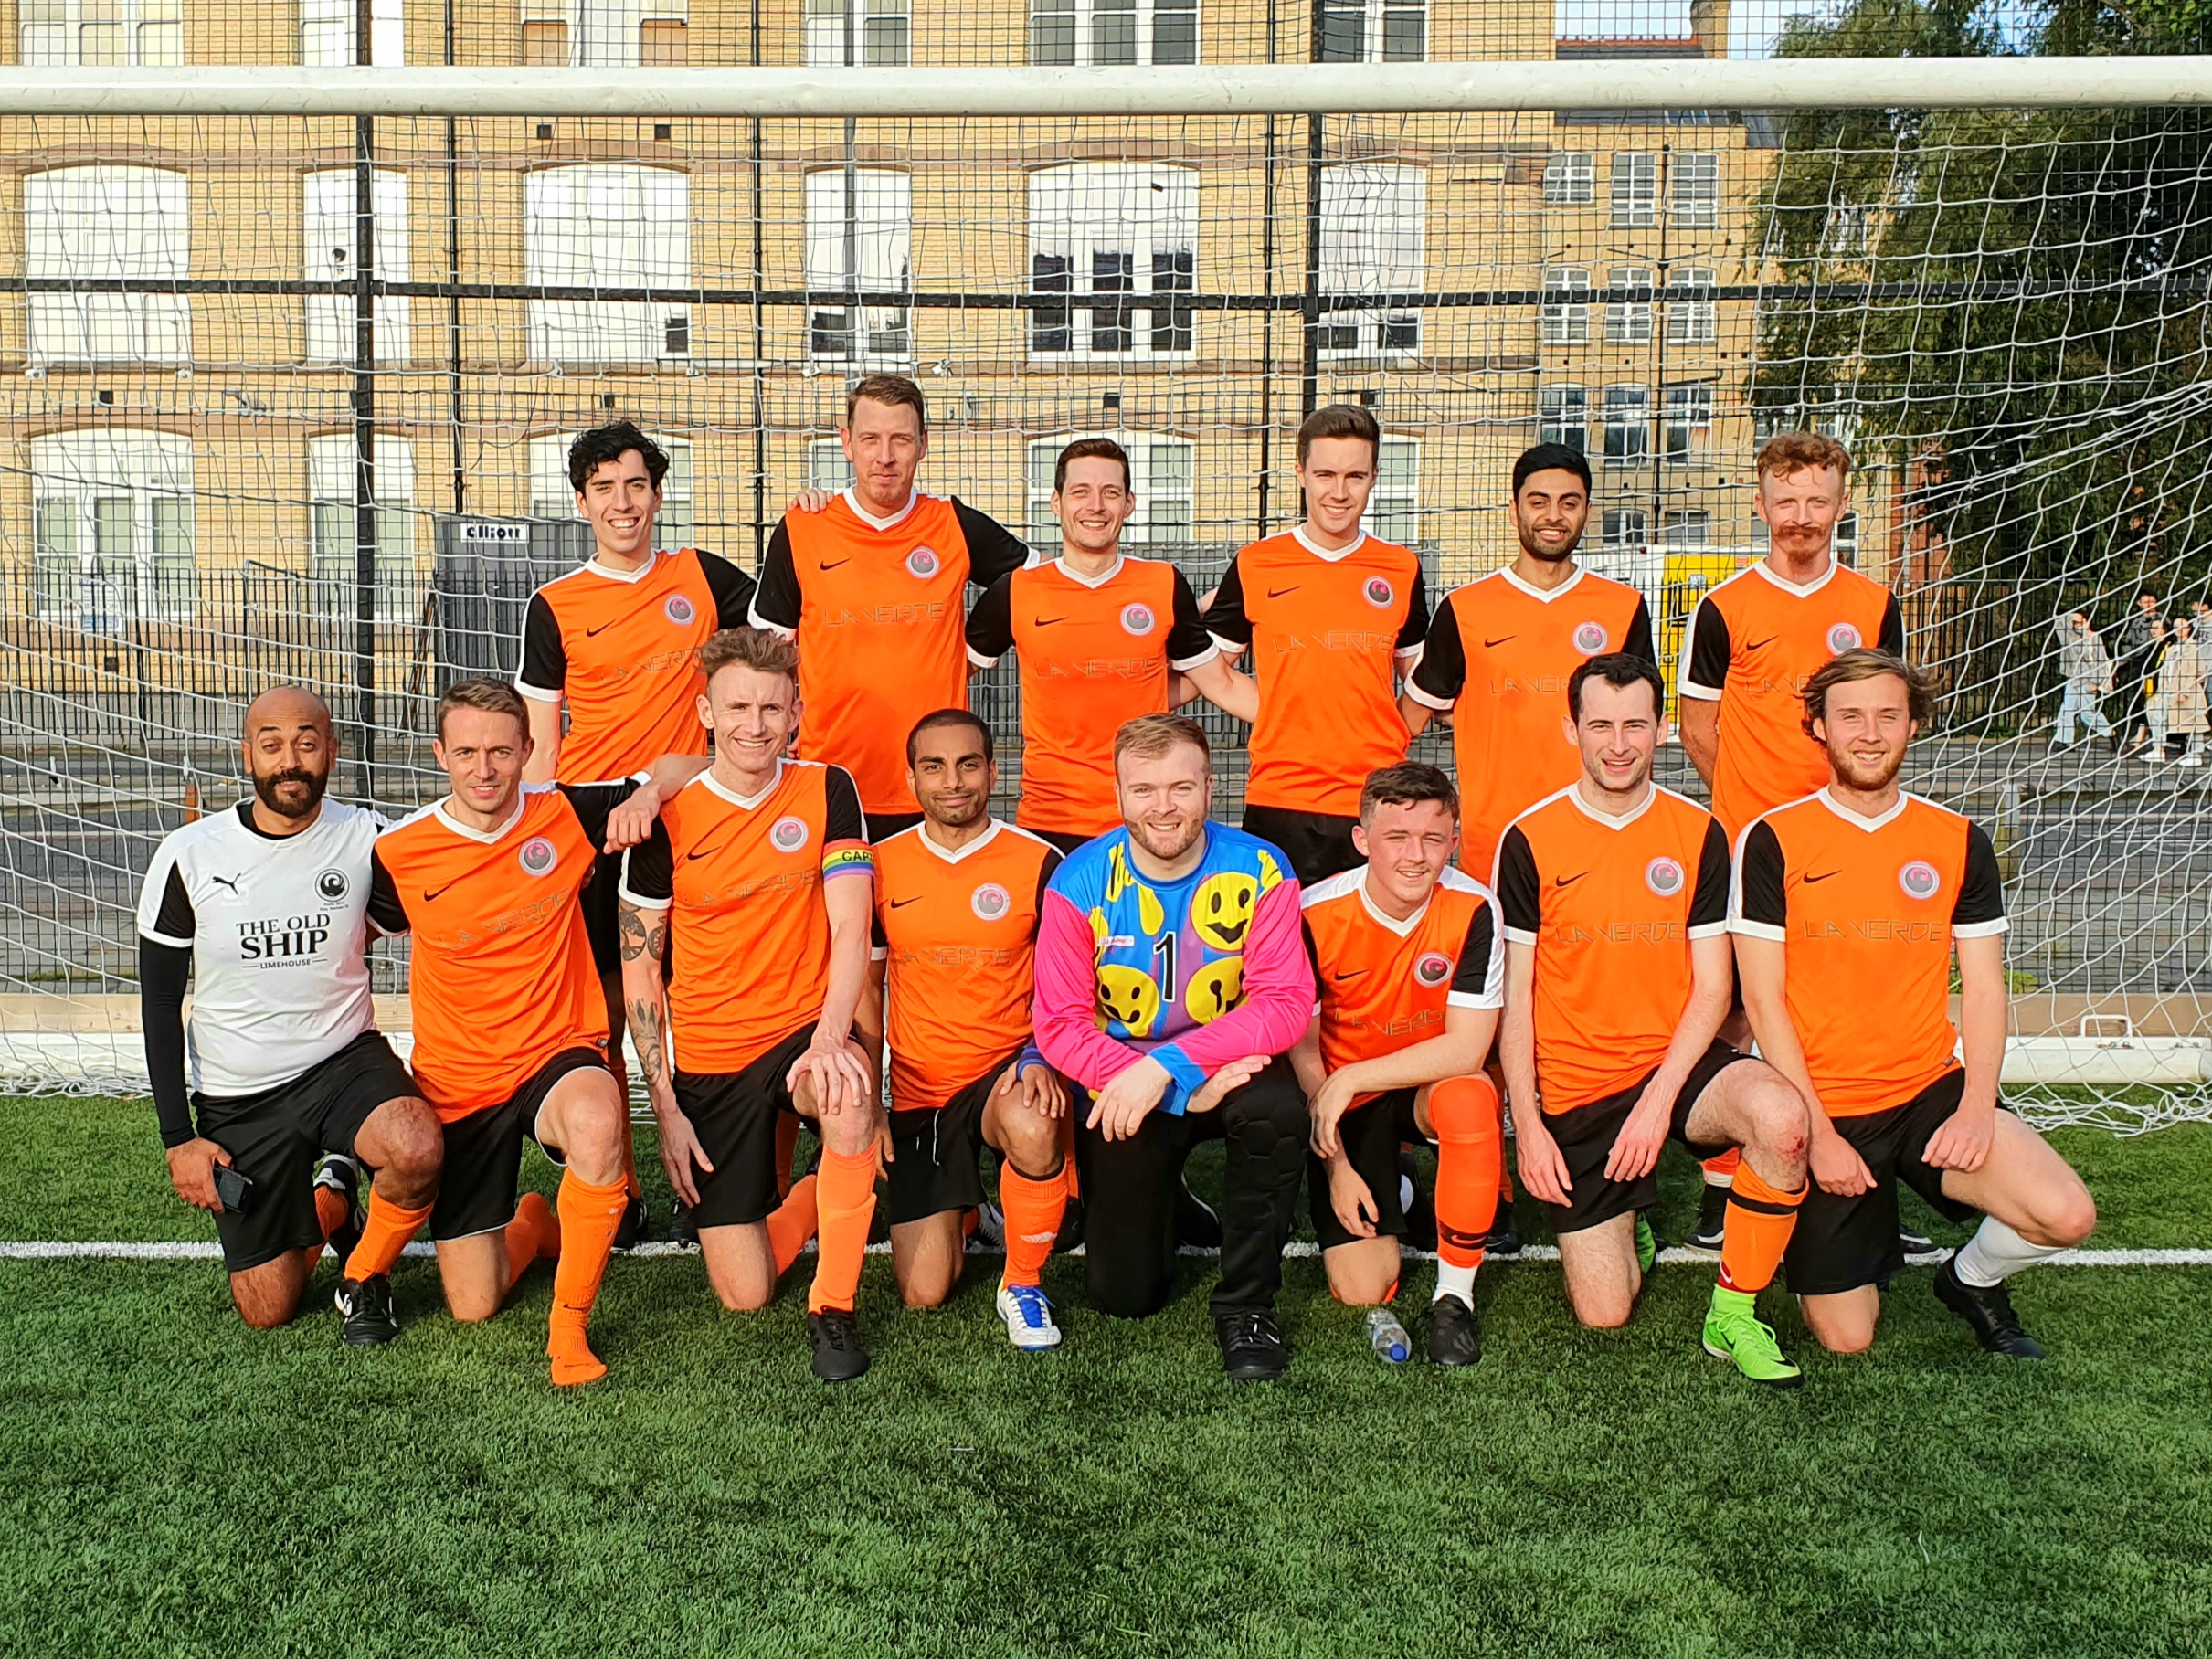 MATCH REPORT: VMFC IIIs v East End Phoenix (15/09/2019)